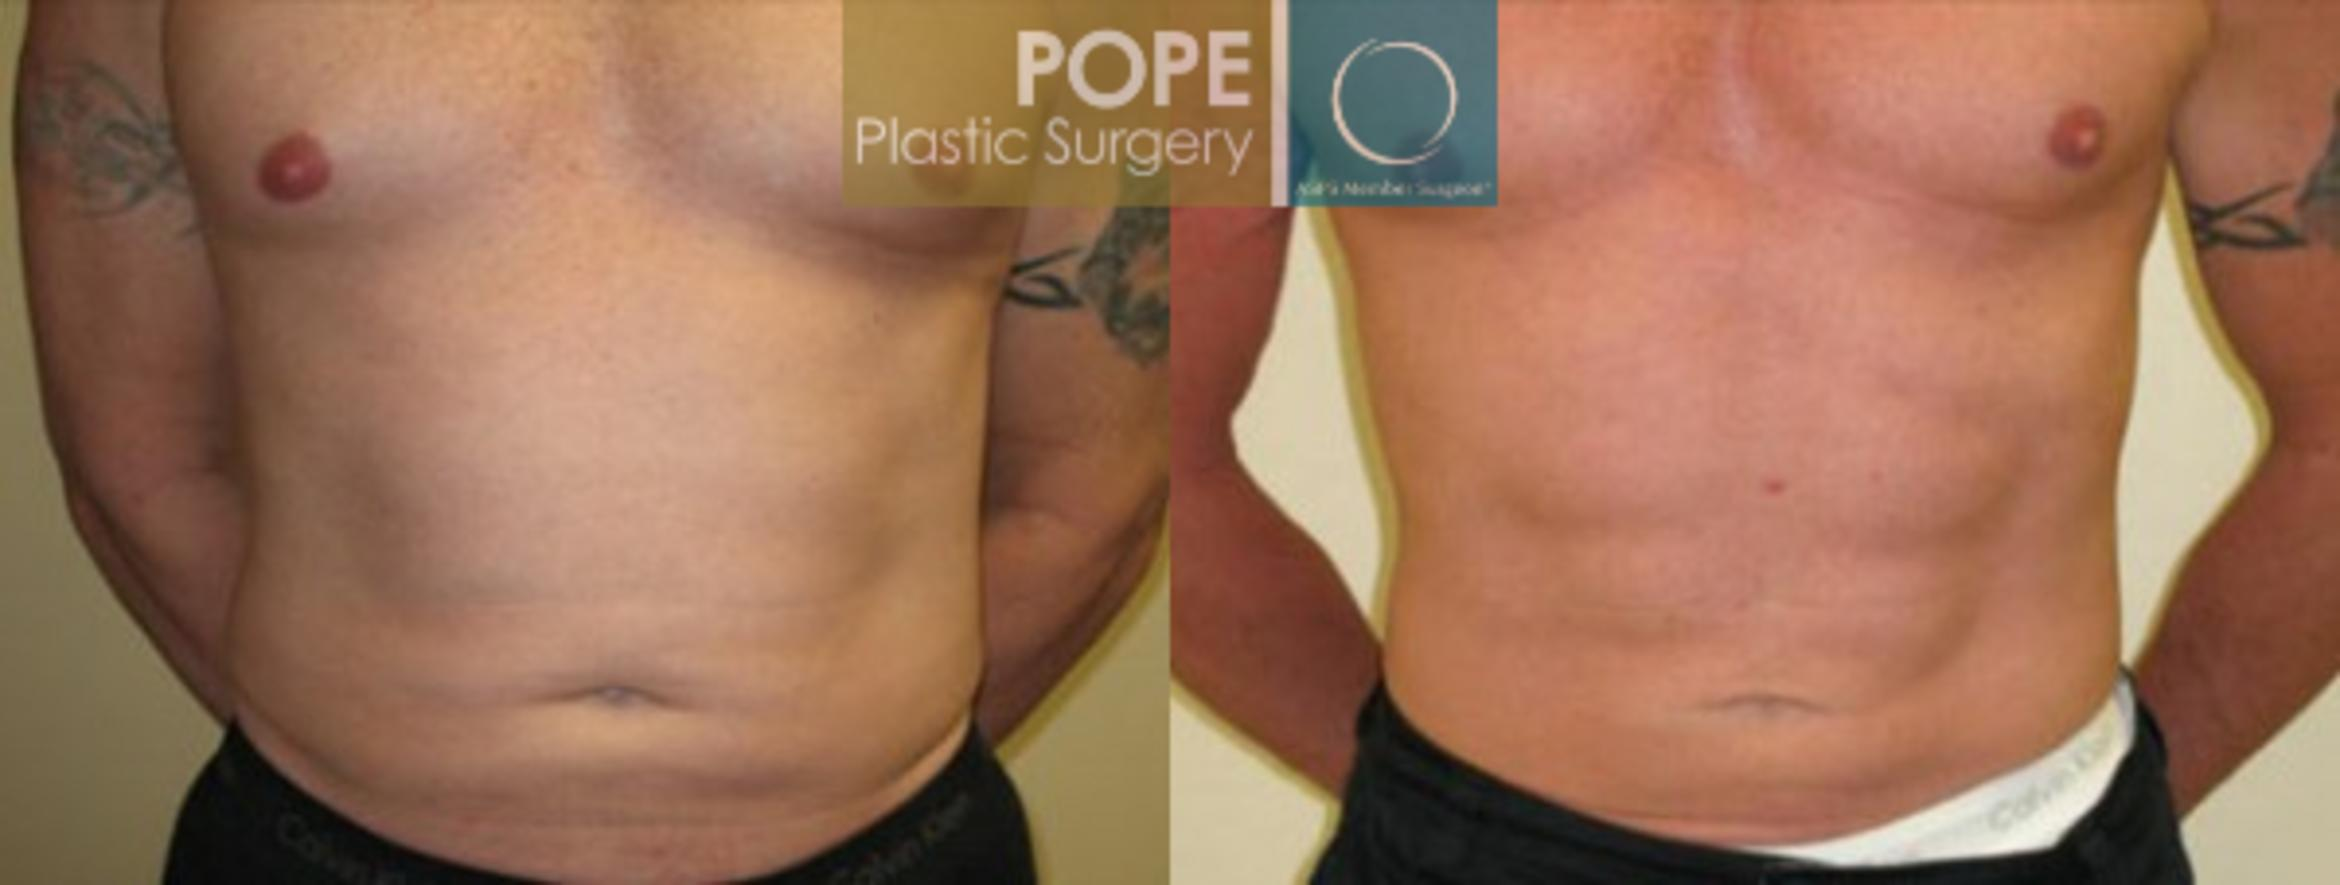 Liposuction Case 57 Before & After View #1 | Orlando, FL | Pope Plastic Surgery